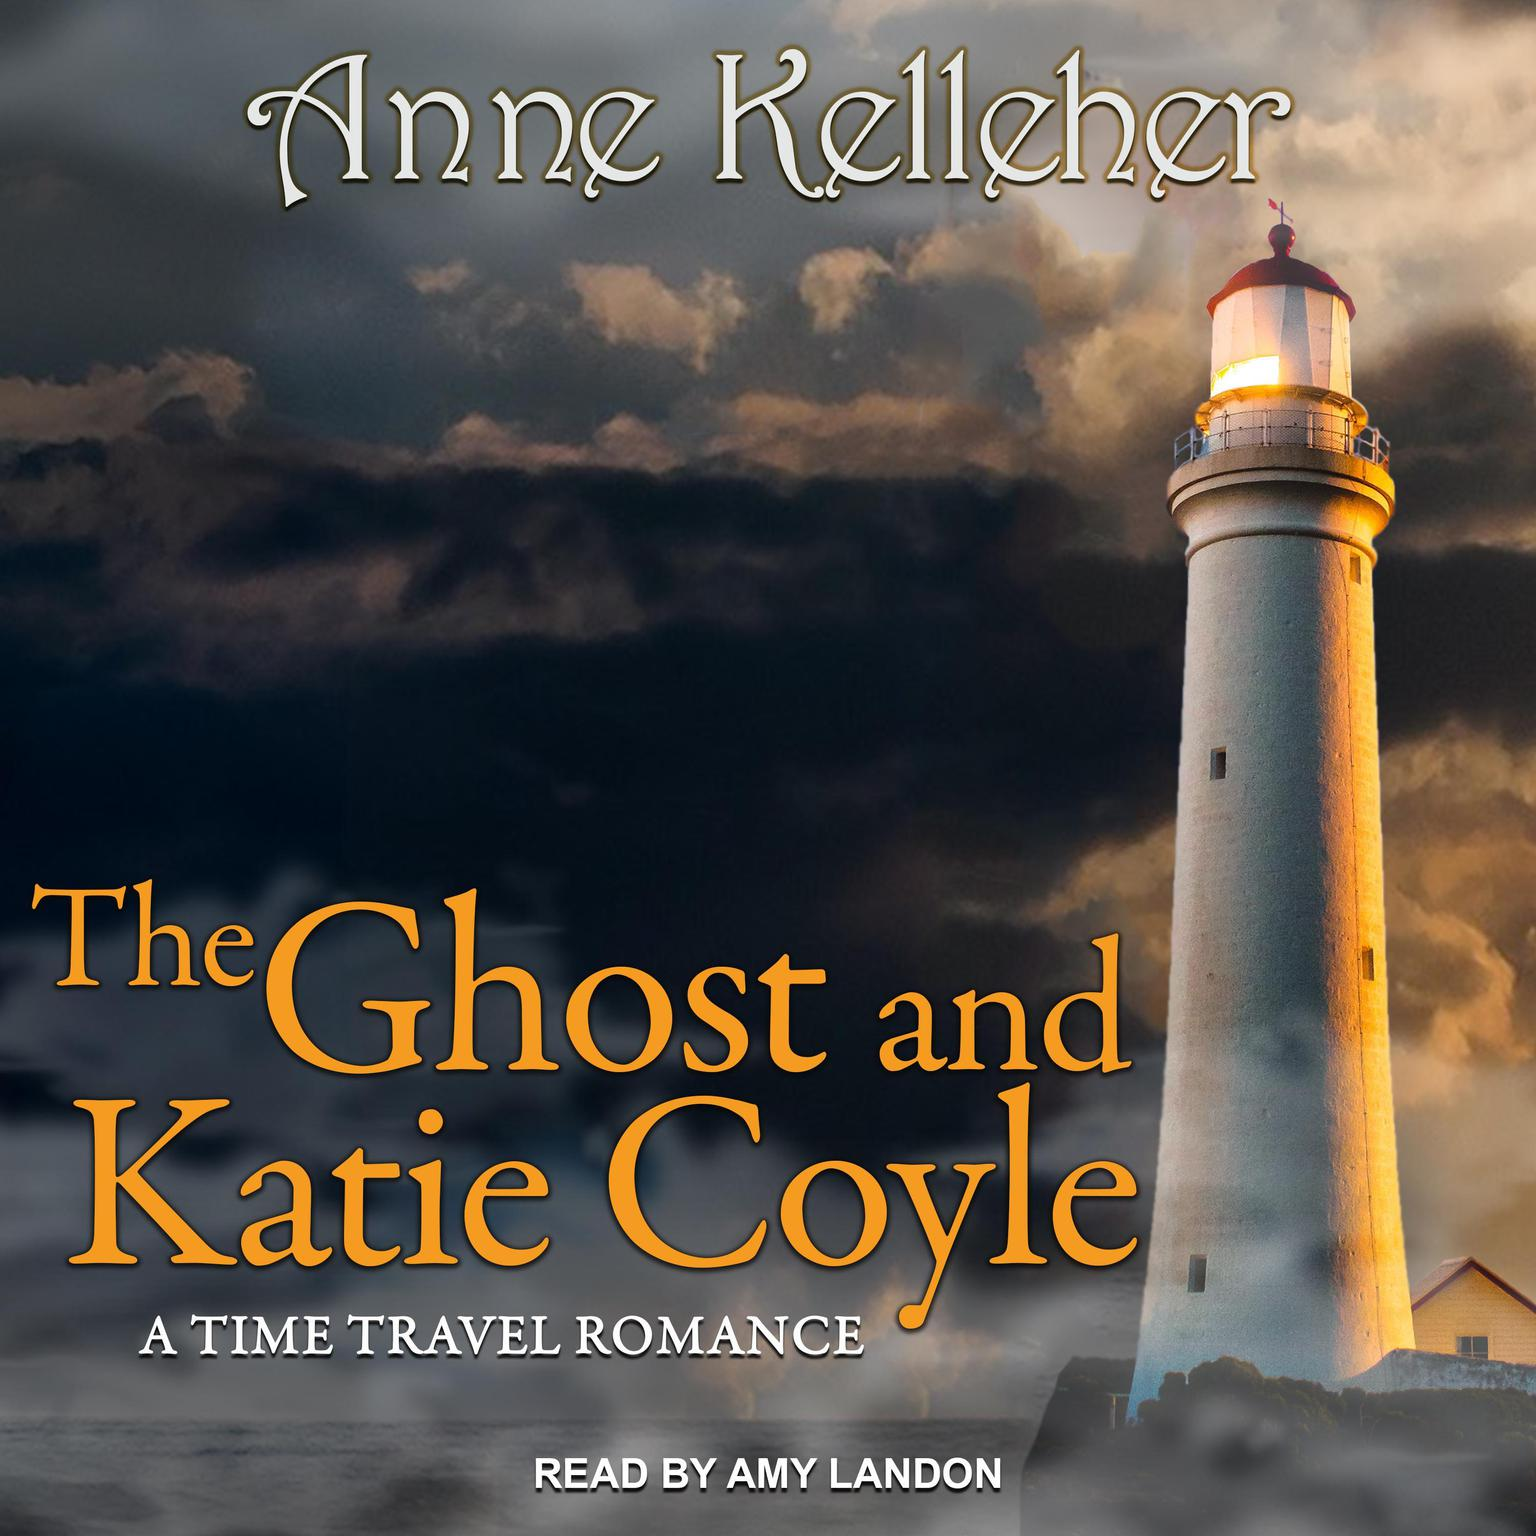 Printable The Ghost and Katie Coyle: a time travel romance Audiobook Cover Art